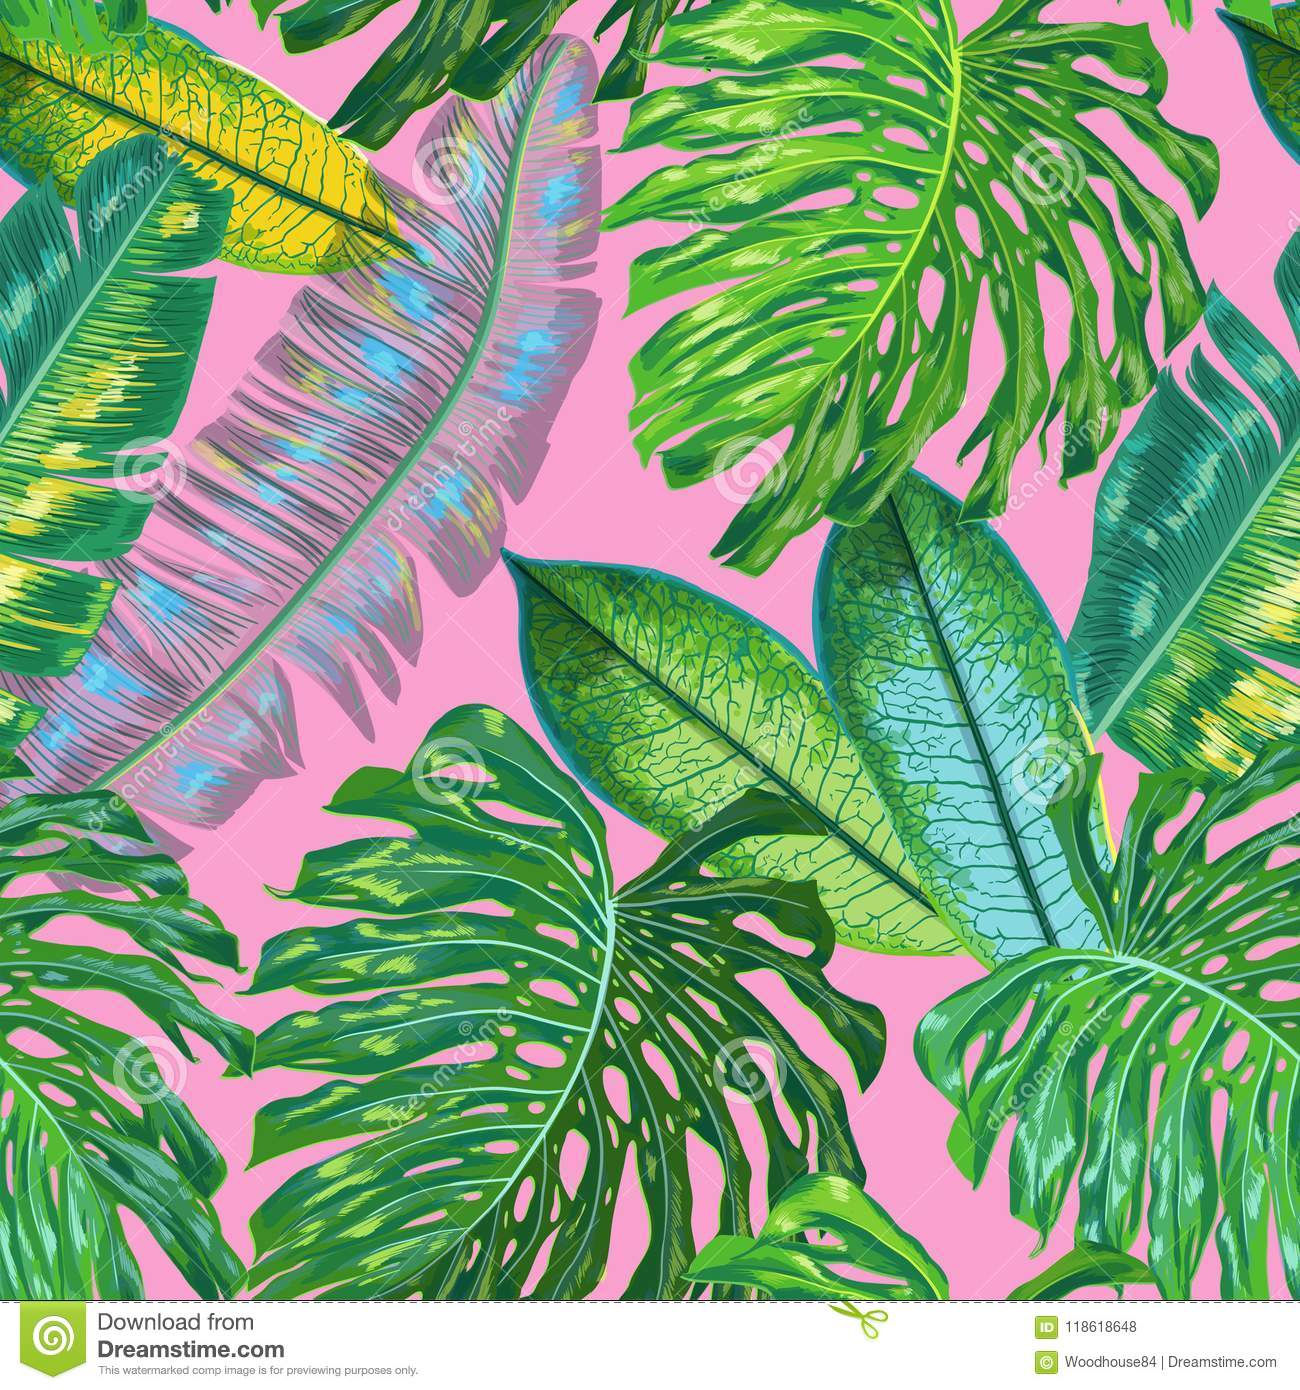 Floral Tropical Seamless Pattern Palm Leaves Watercolor